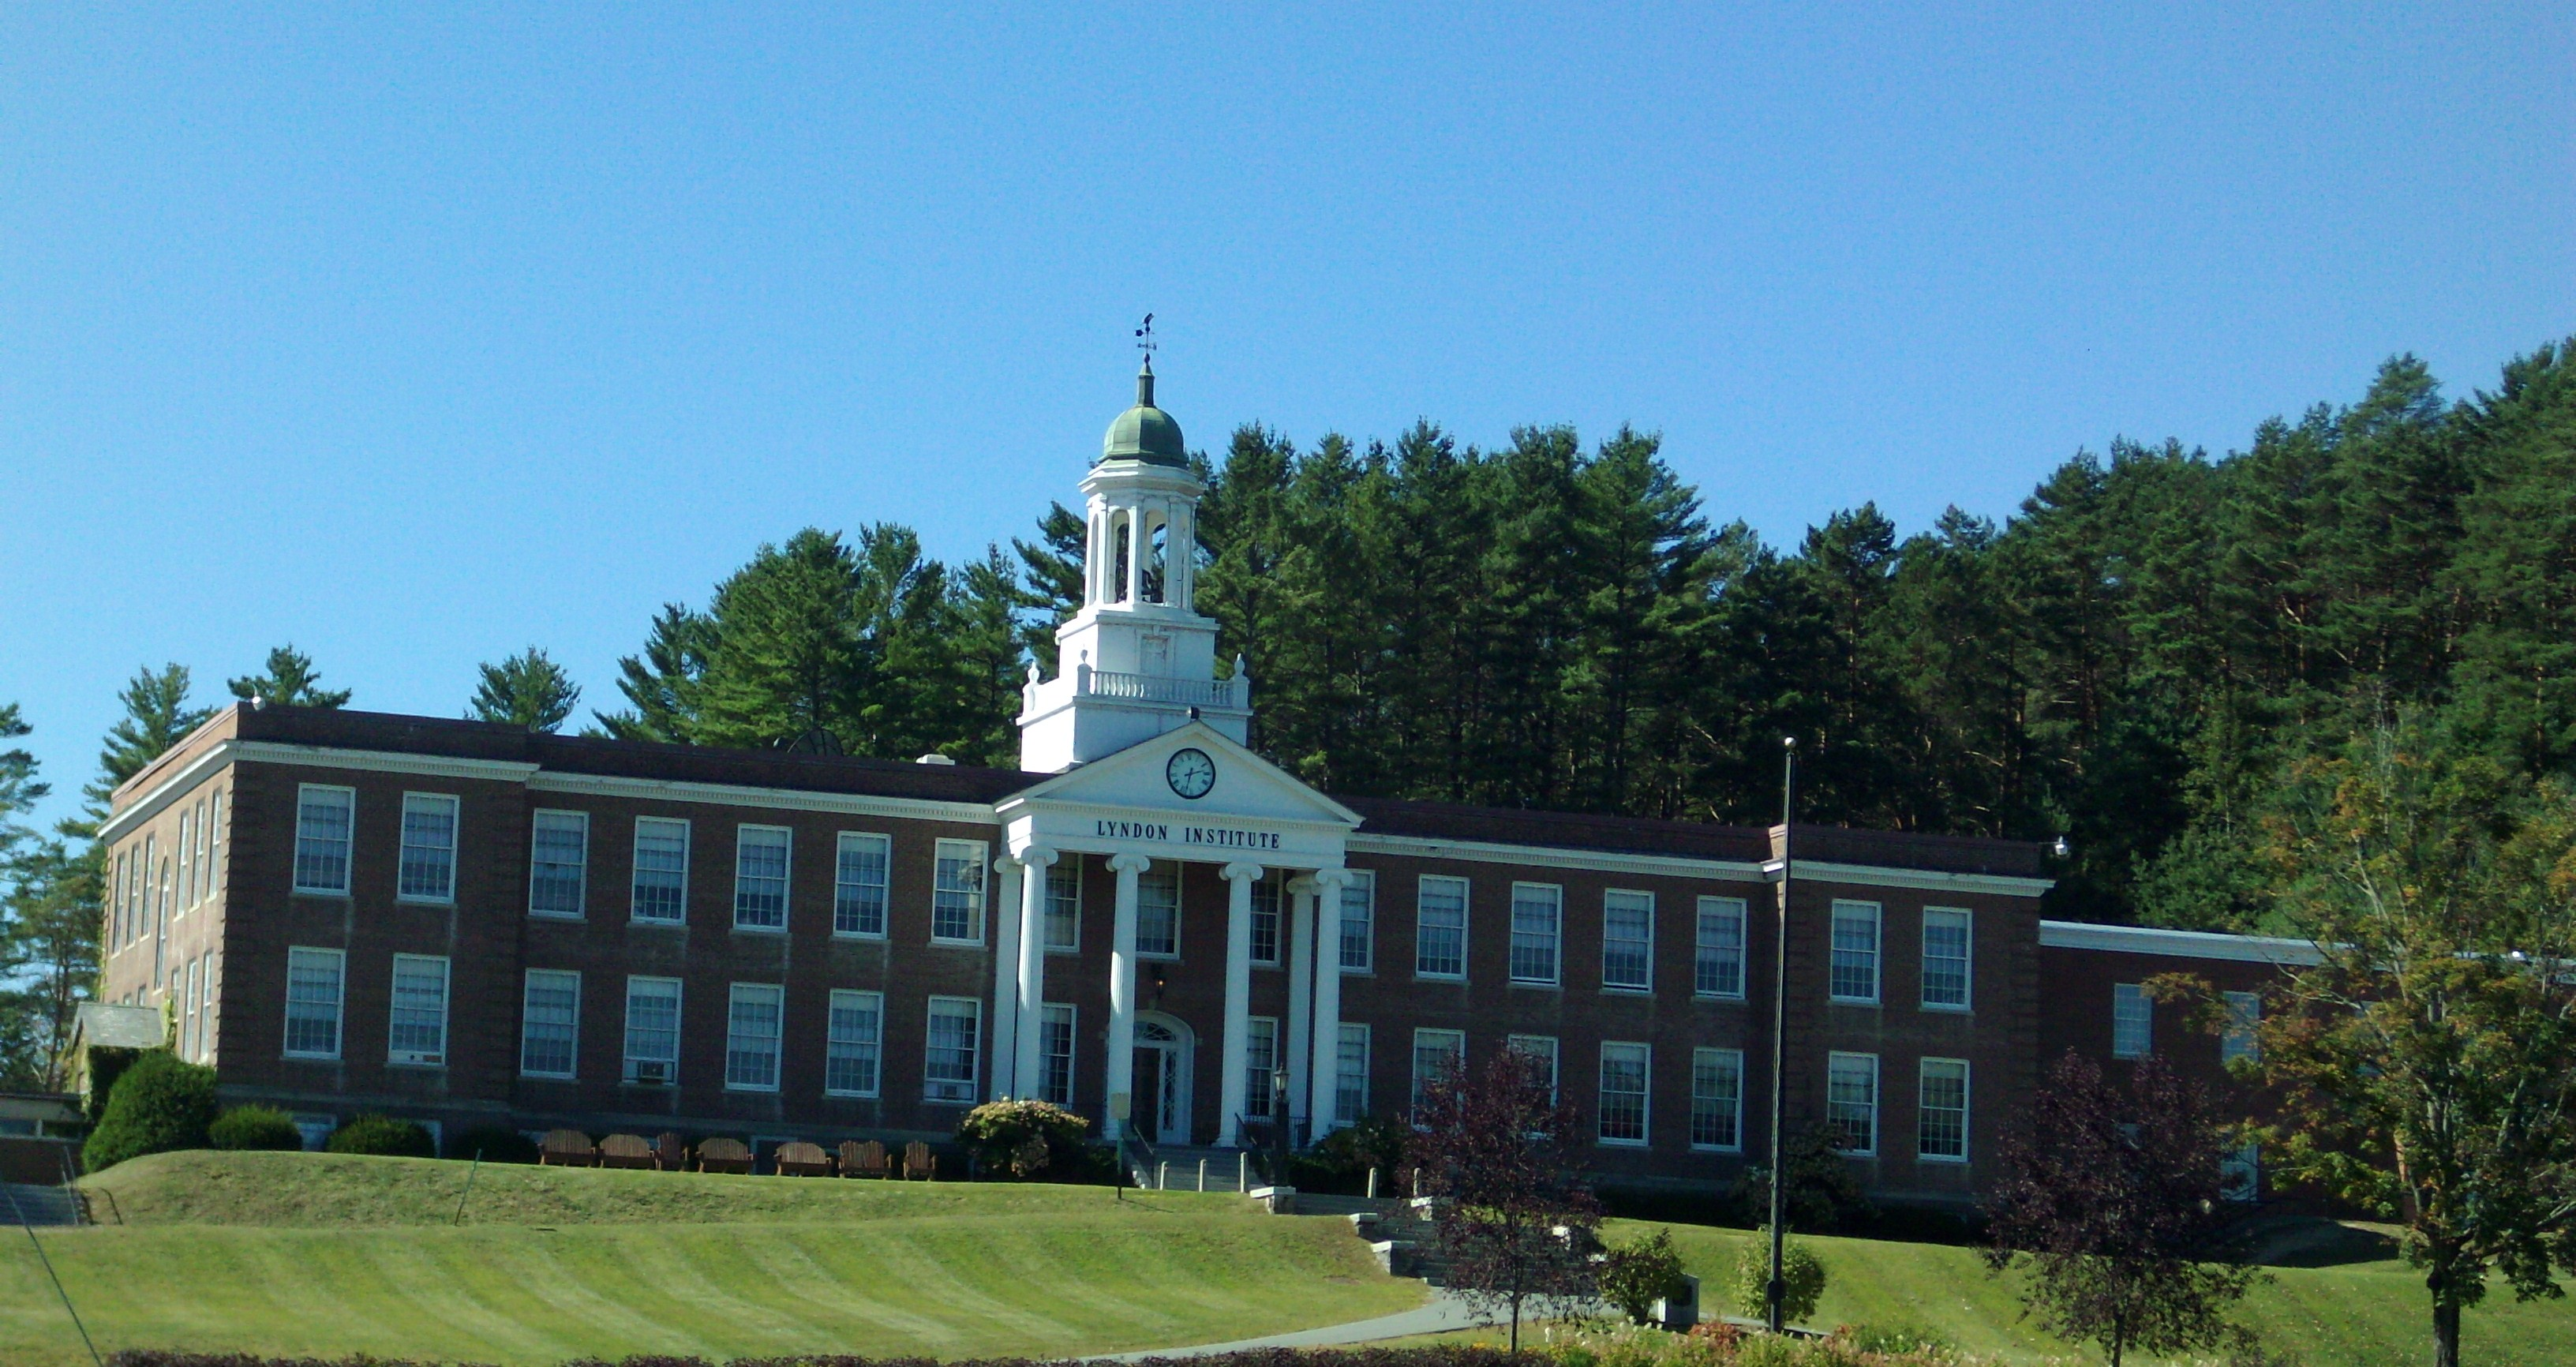 Lyndon Institute in Vermont